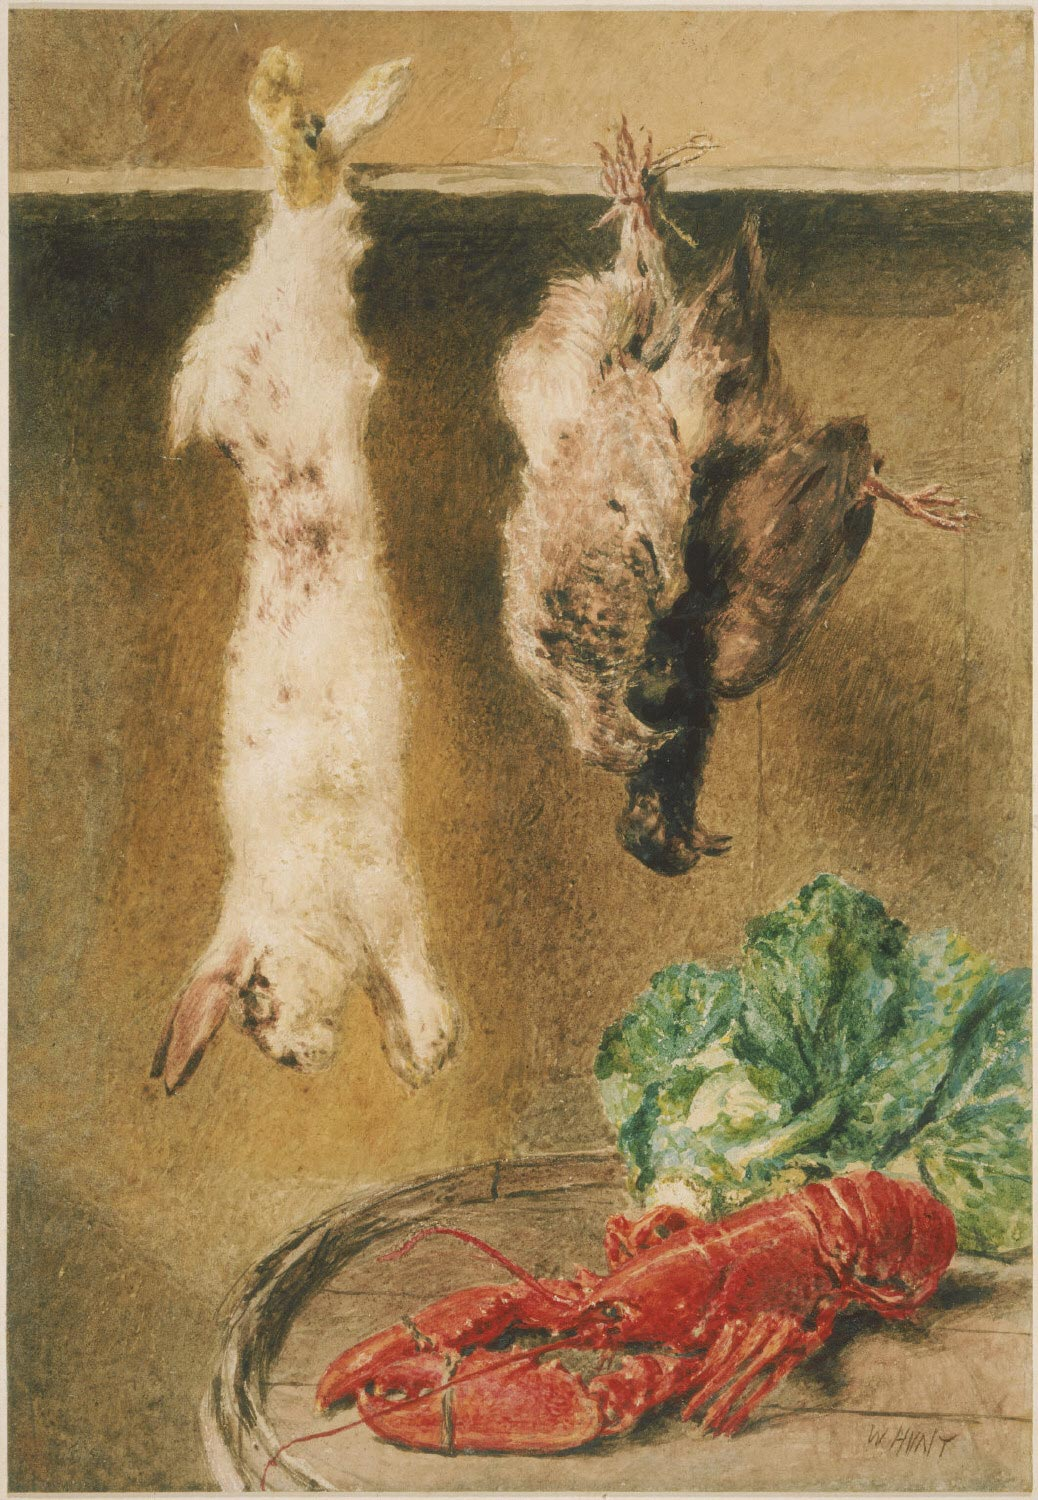 Dead Game Hanging, with Lobster and Cabbage on a Barrel